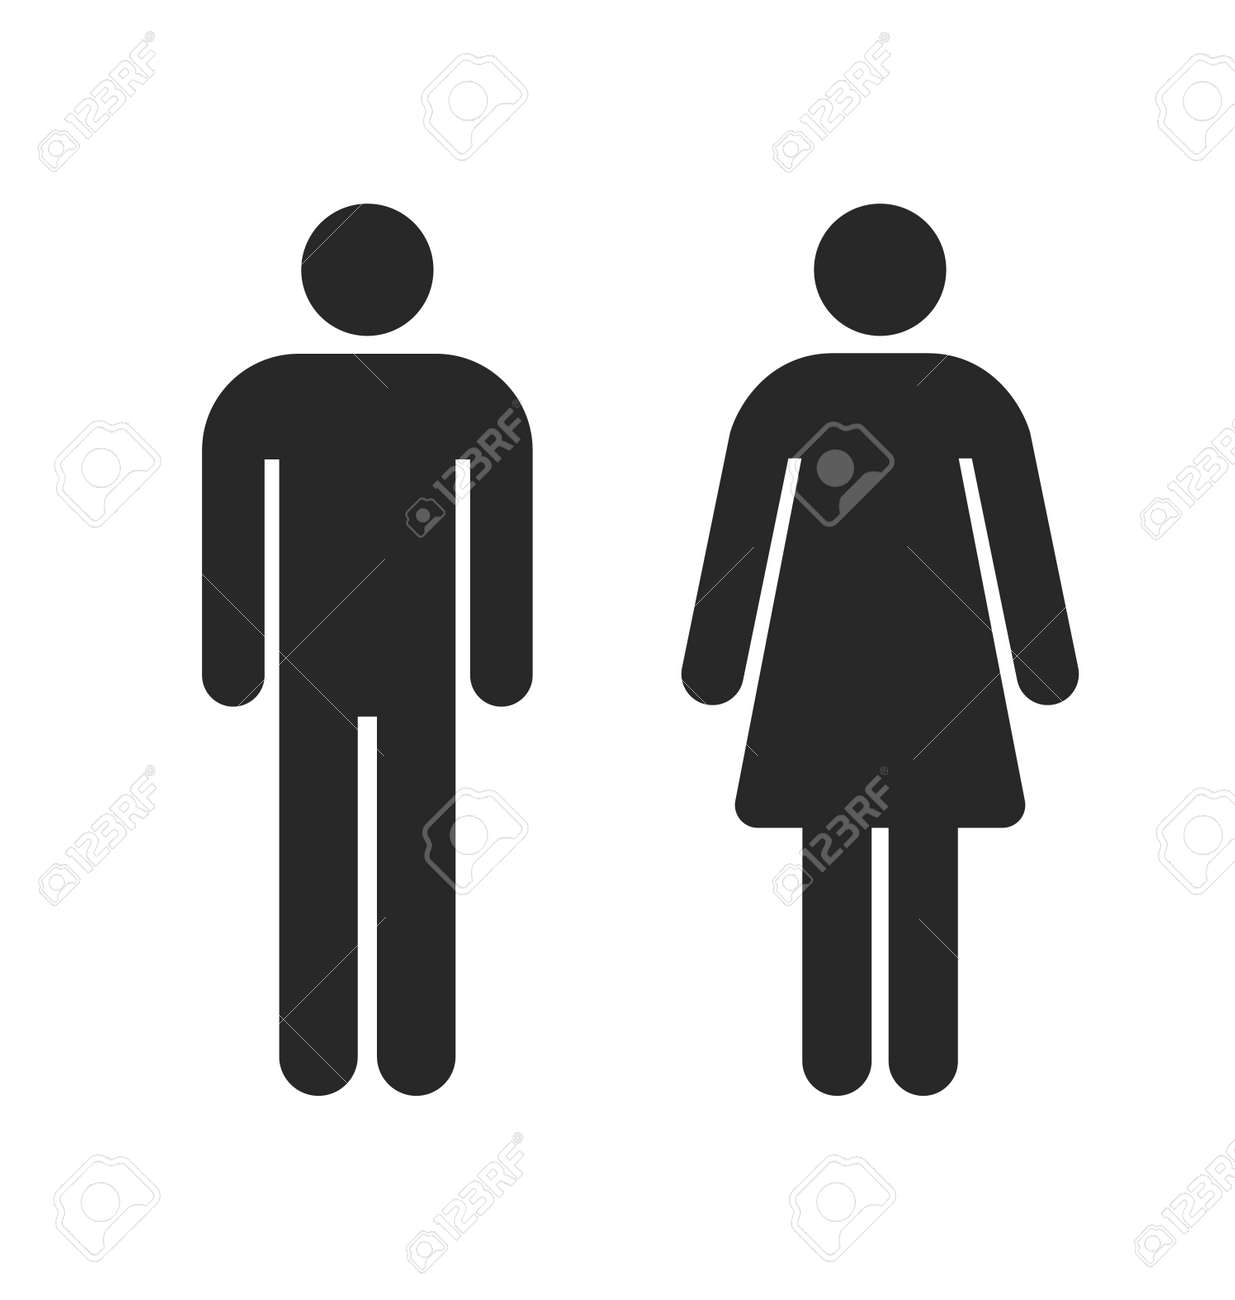 restroom toilet symbols outlines male and female simple silhouettes vector - 166409971